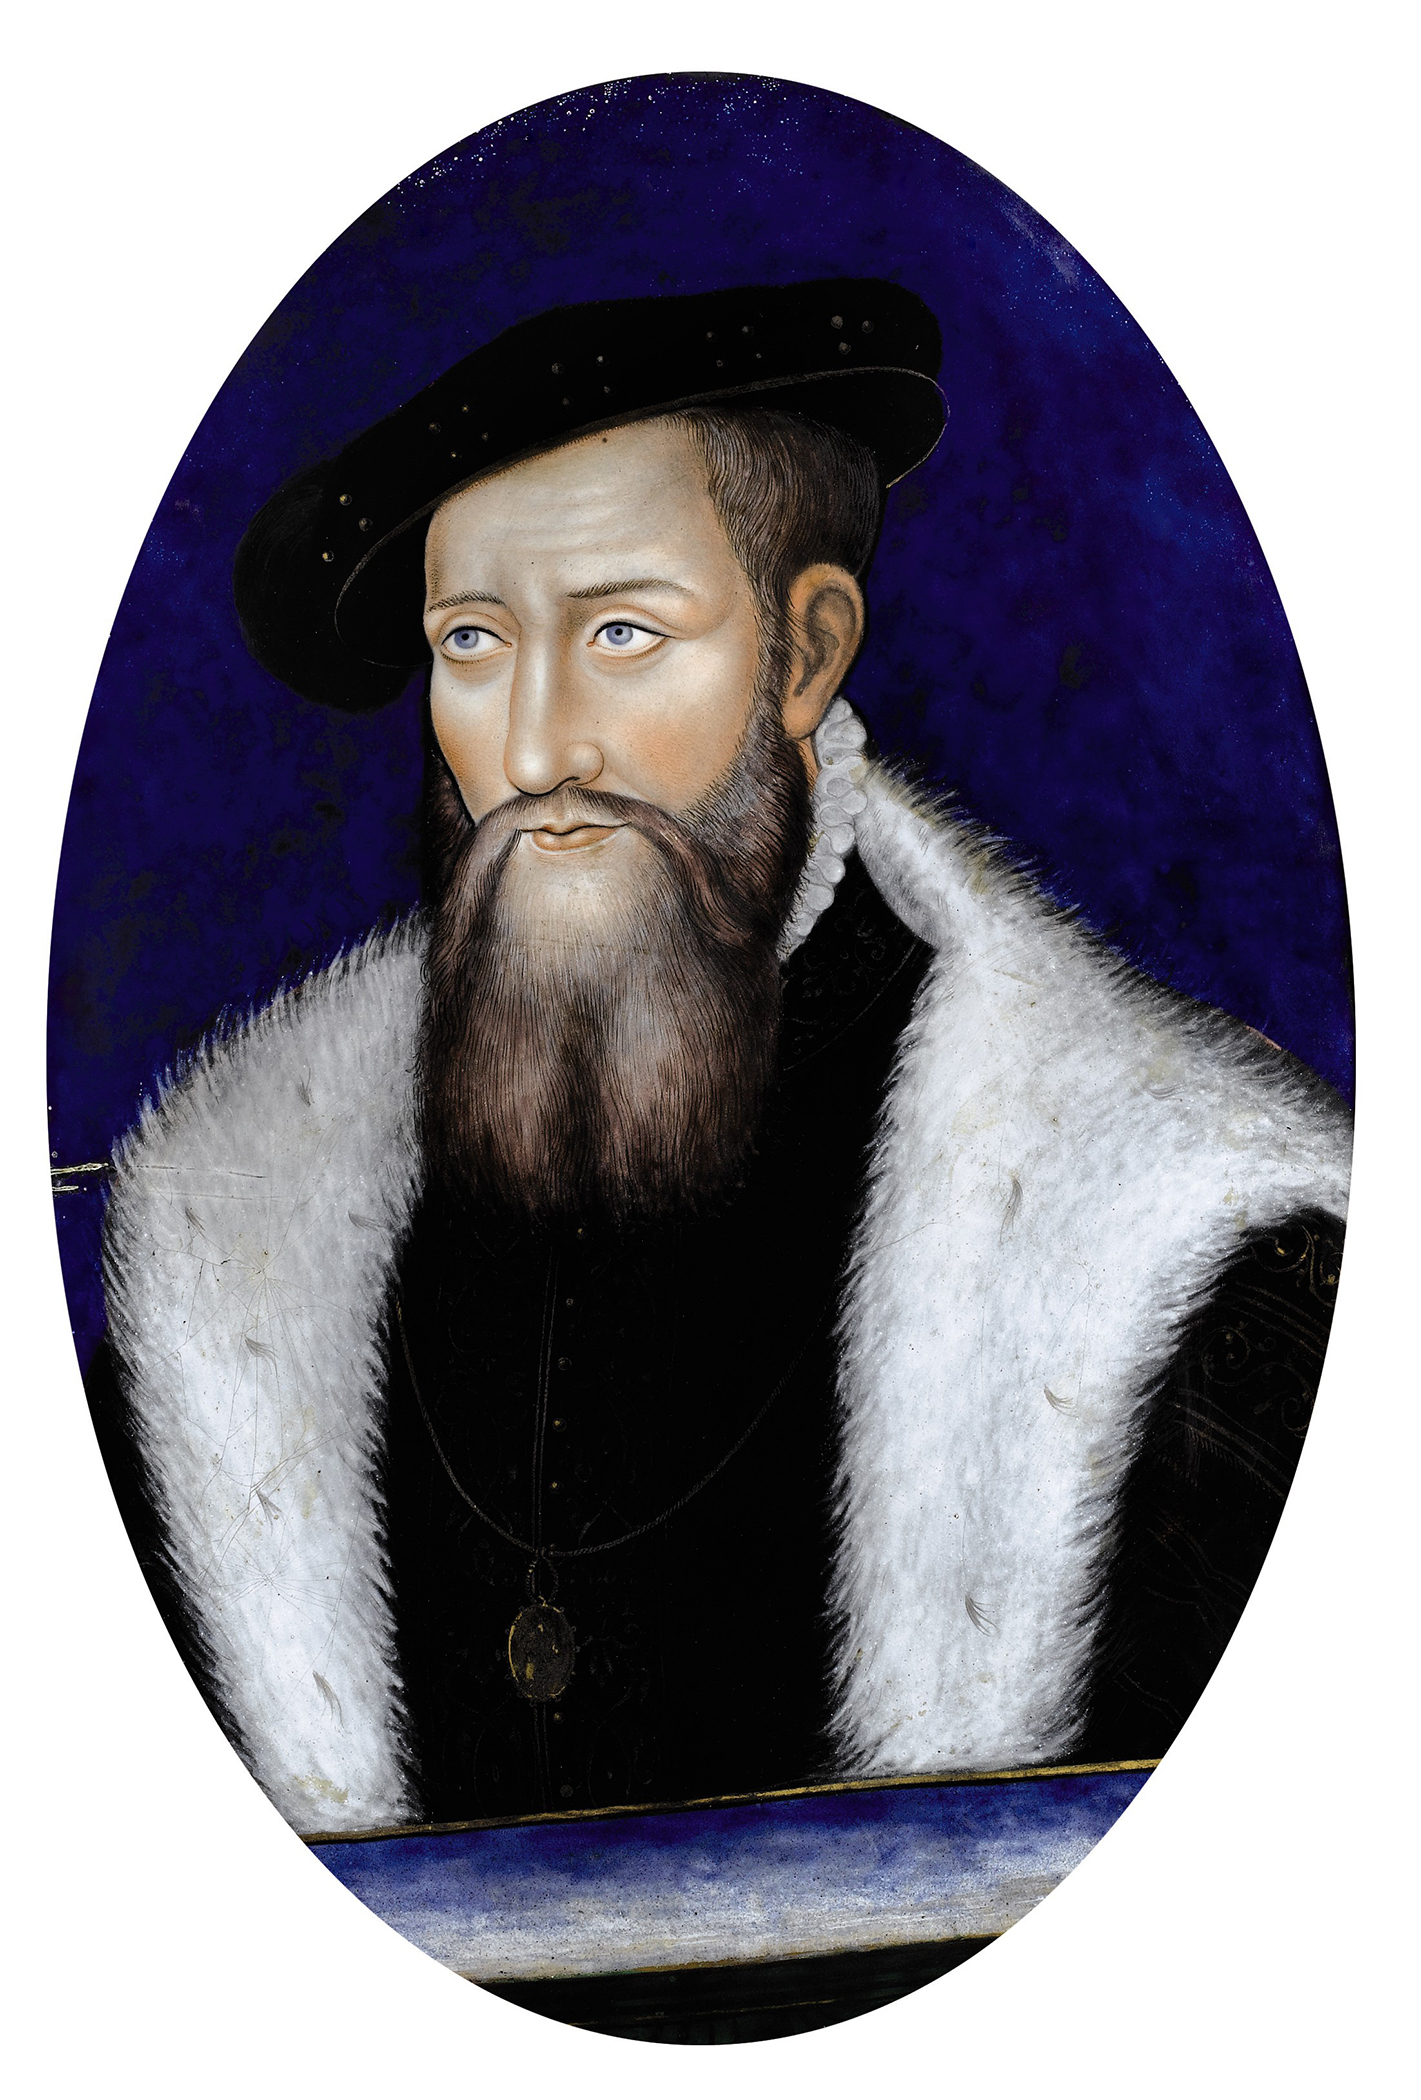 Portrait of Claude de Lorraine (1496-1550), Duke of Guise (1528-1550), governor of Burgundy (1543-1550), Grand Huntsman of France (1526-1550) | Portraits of Kings